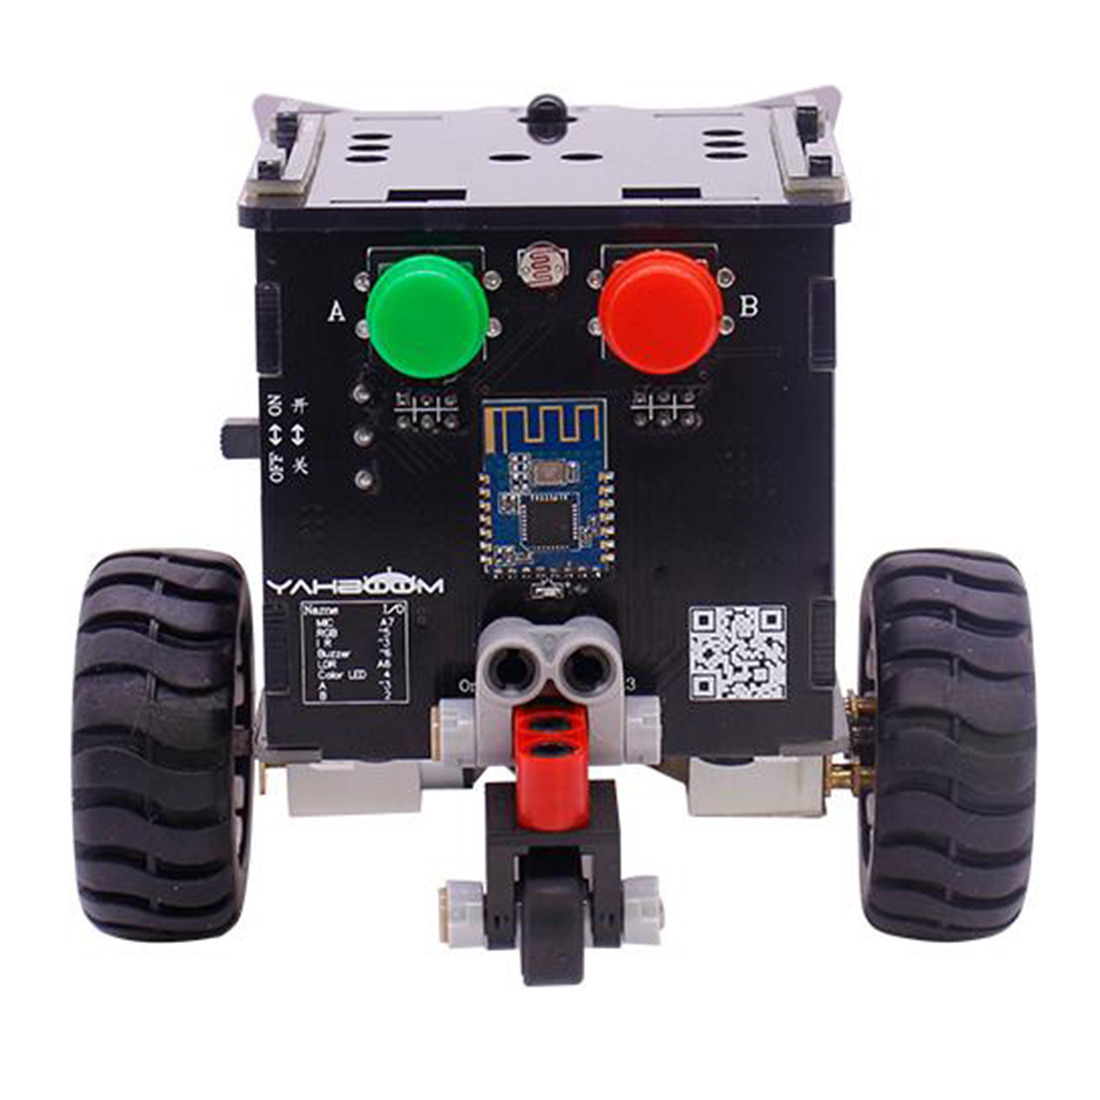 MODIKER High Tech Toys Standard Version Omibox Scratch Programmable Robot Car Kit Programmable Toys